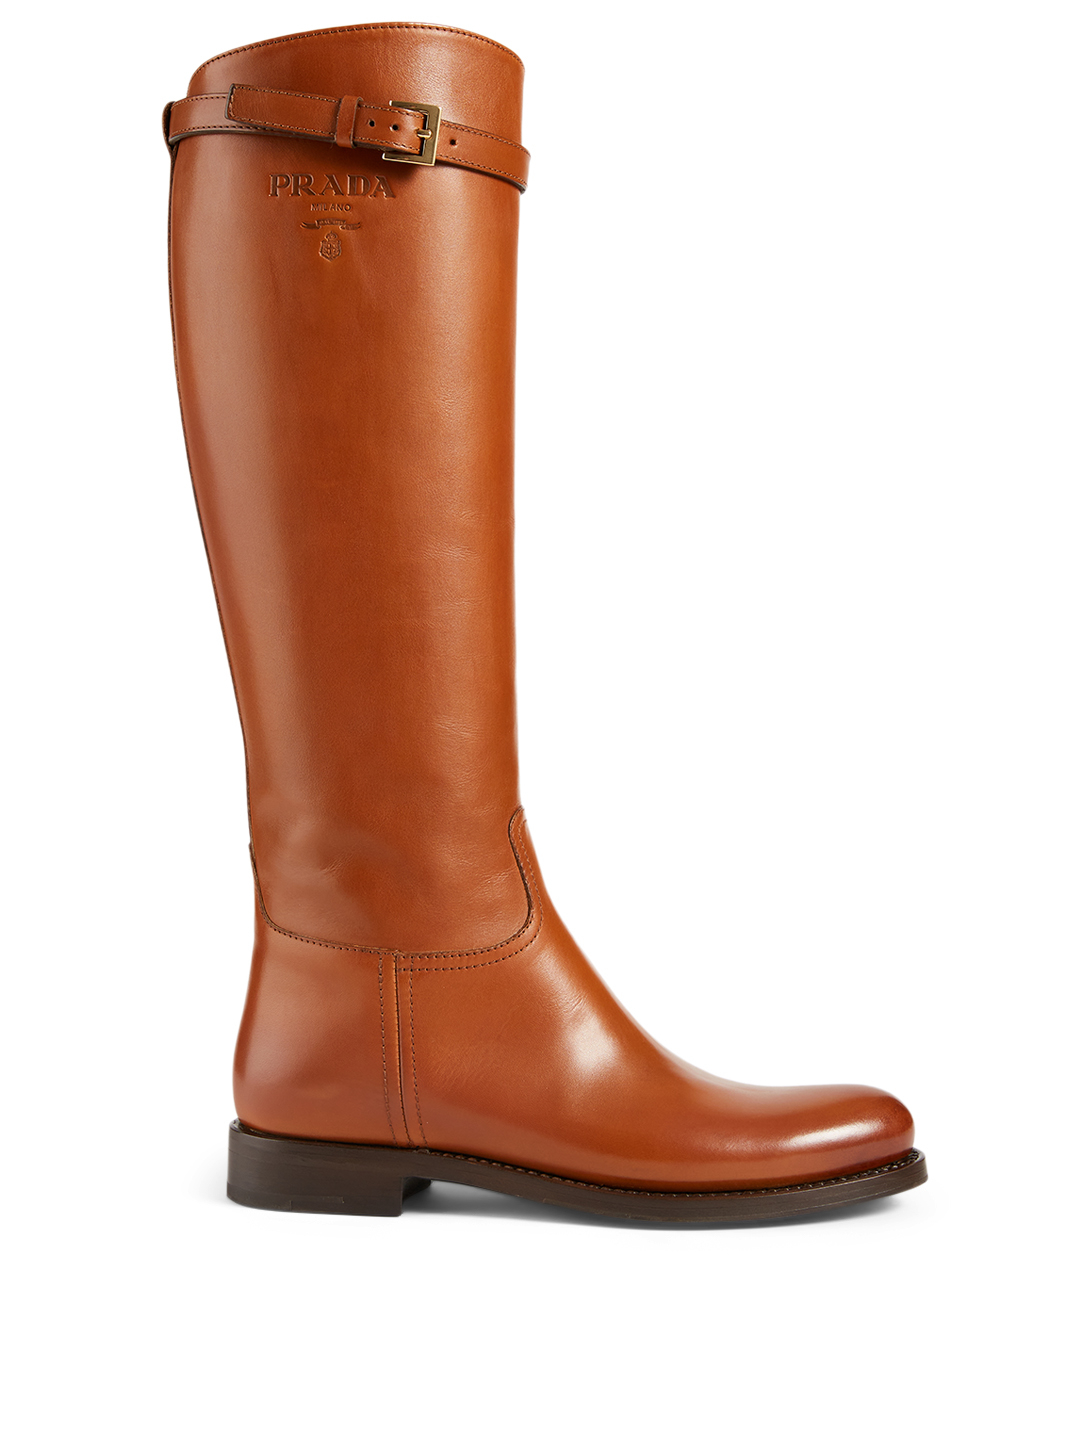 PRADA Leather Knee-High Riding Boots Women's Brown